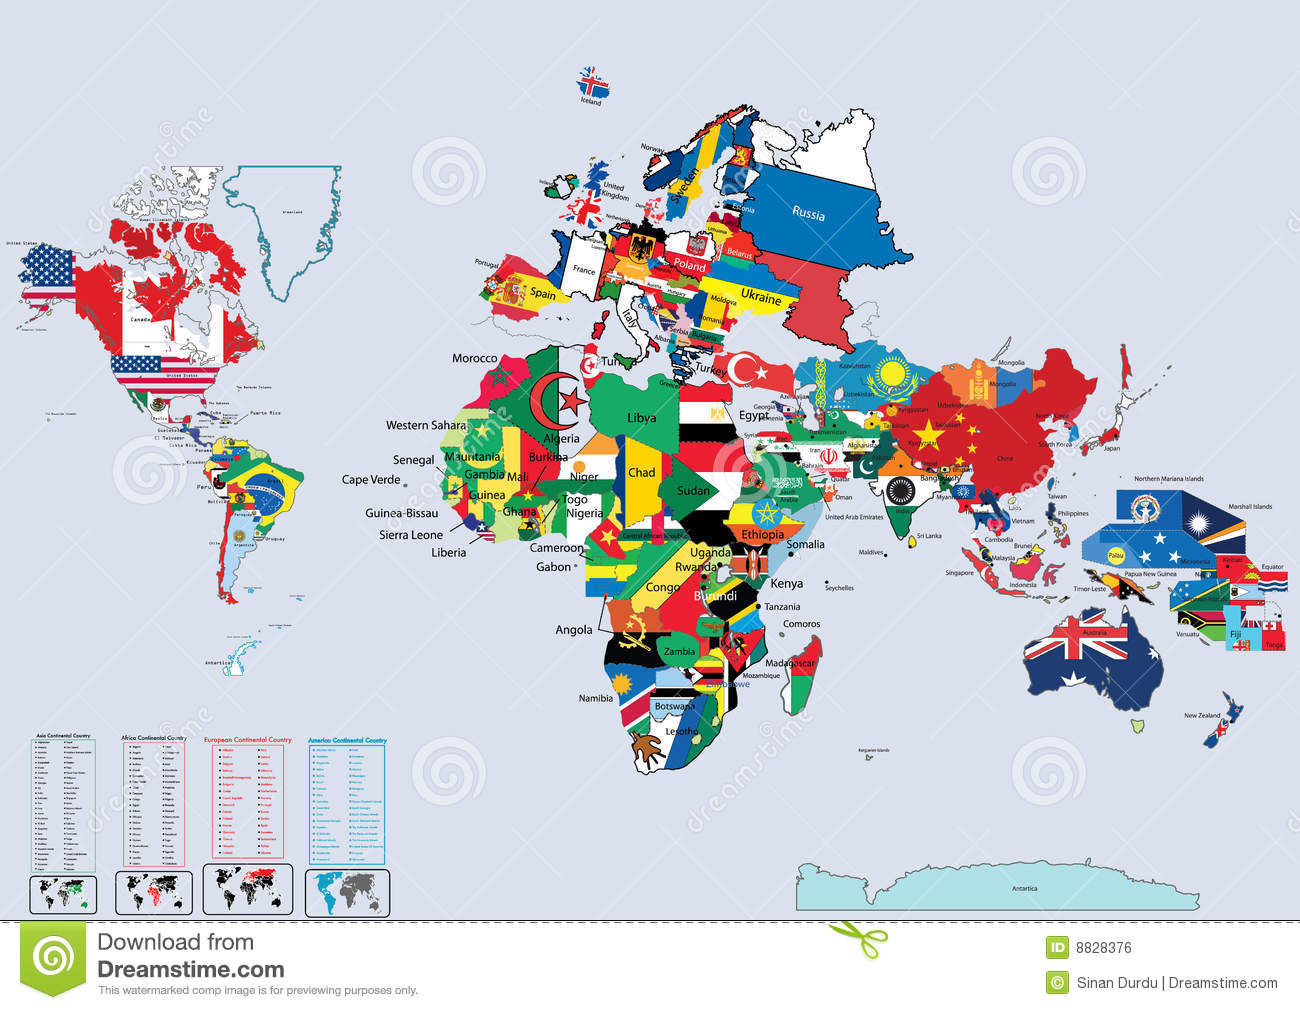 World Country Flags And Map Stock Vector Illustration Of America - Map of the world with countries